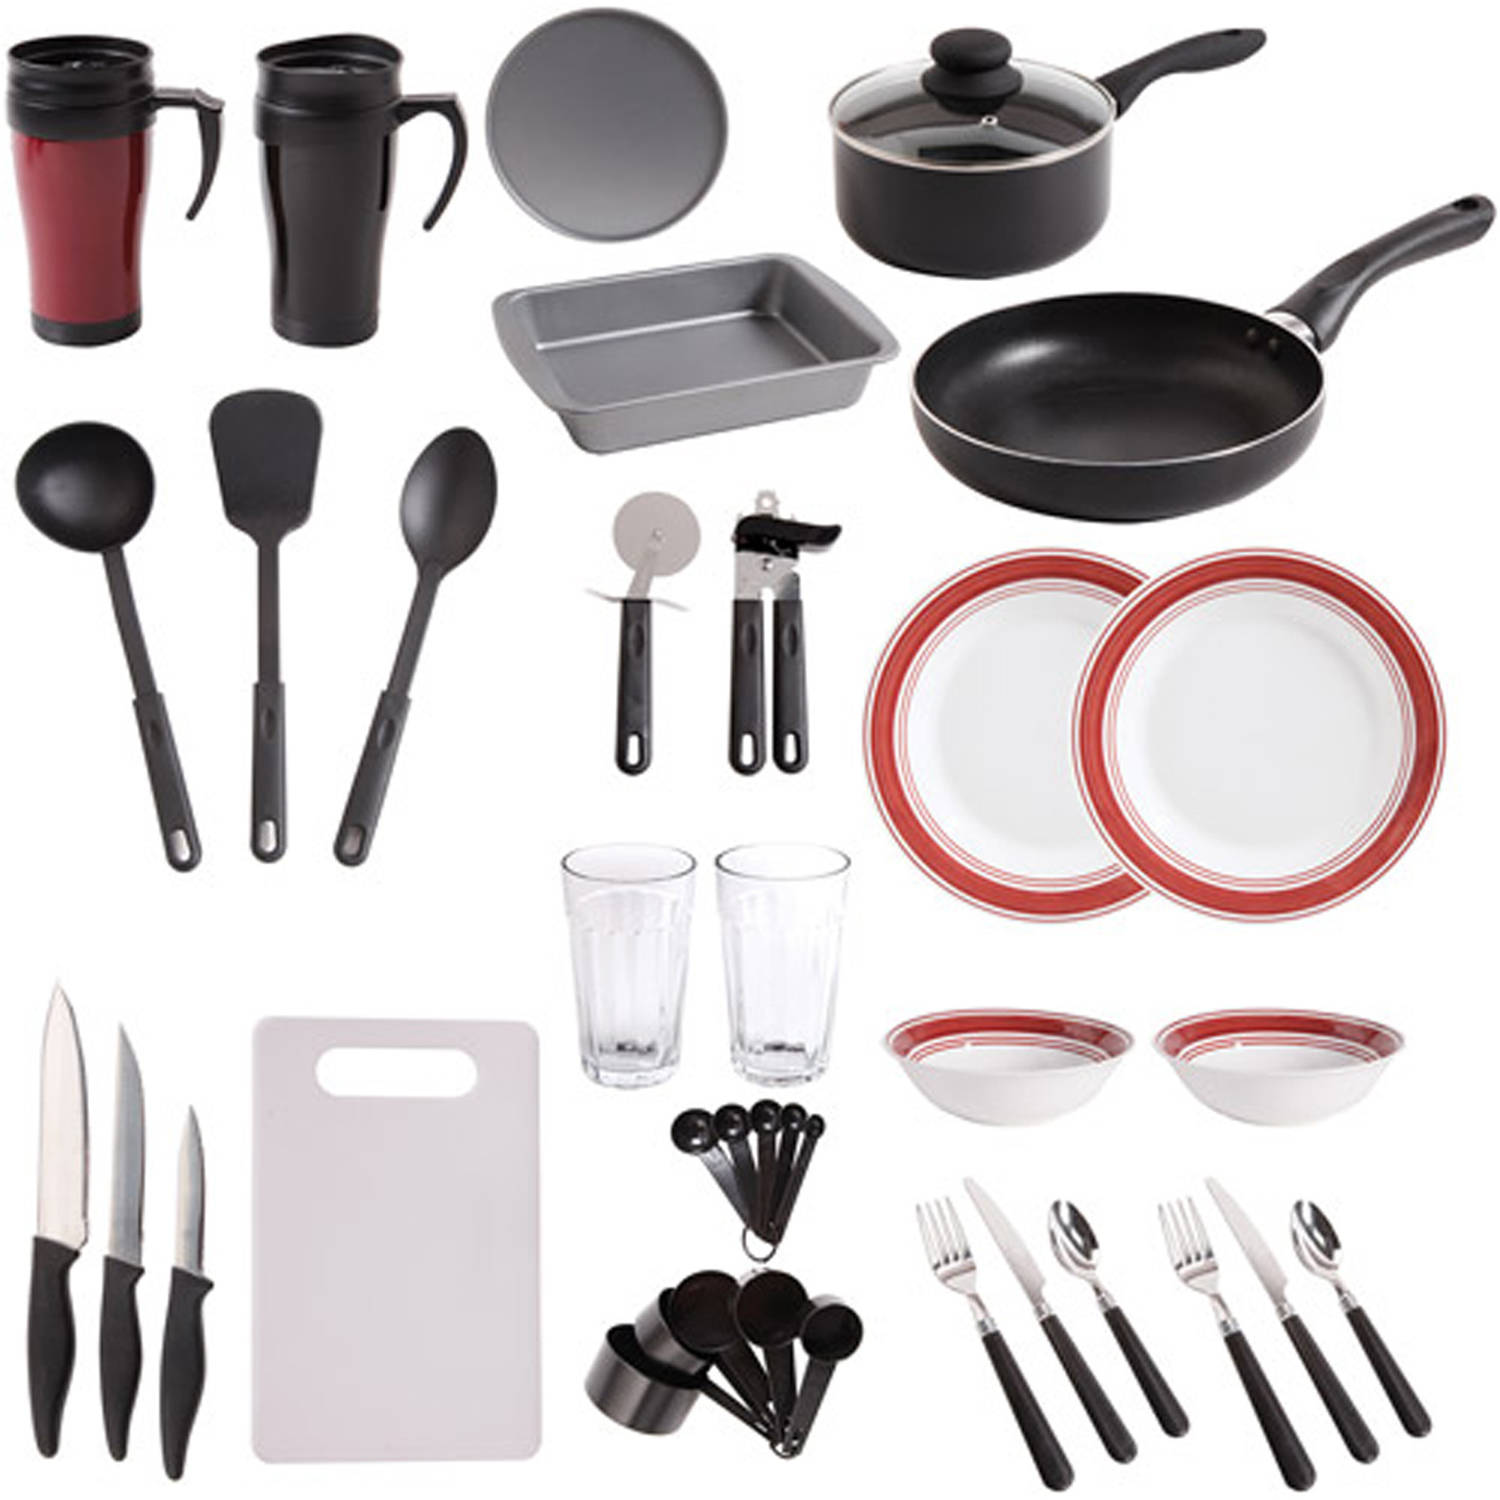 gibson home dorm kitchen 38-pc. combo set - walmart